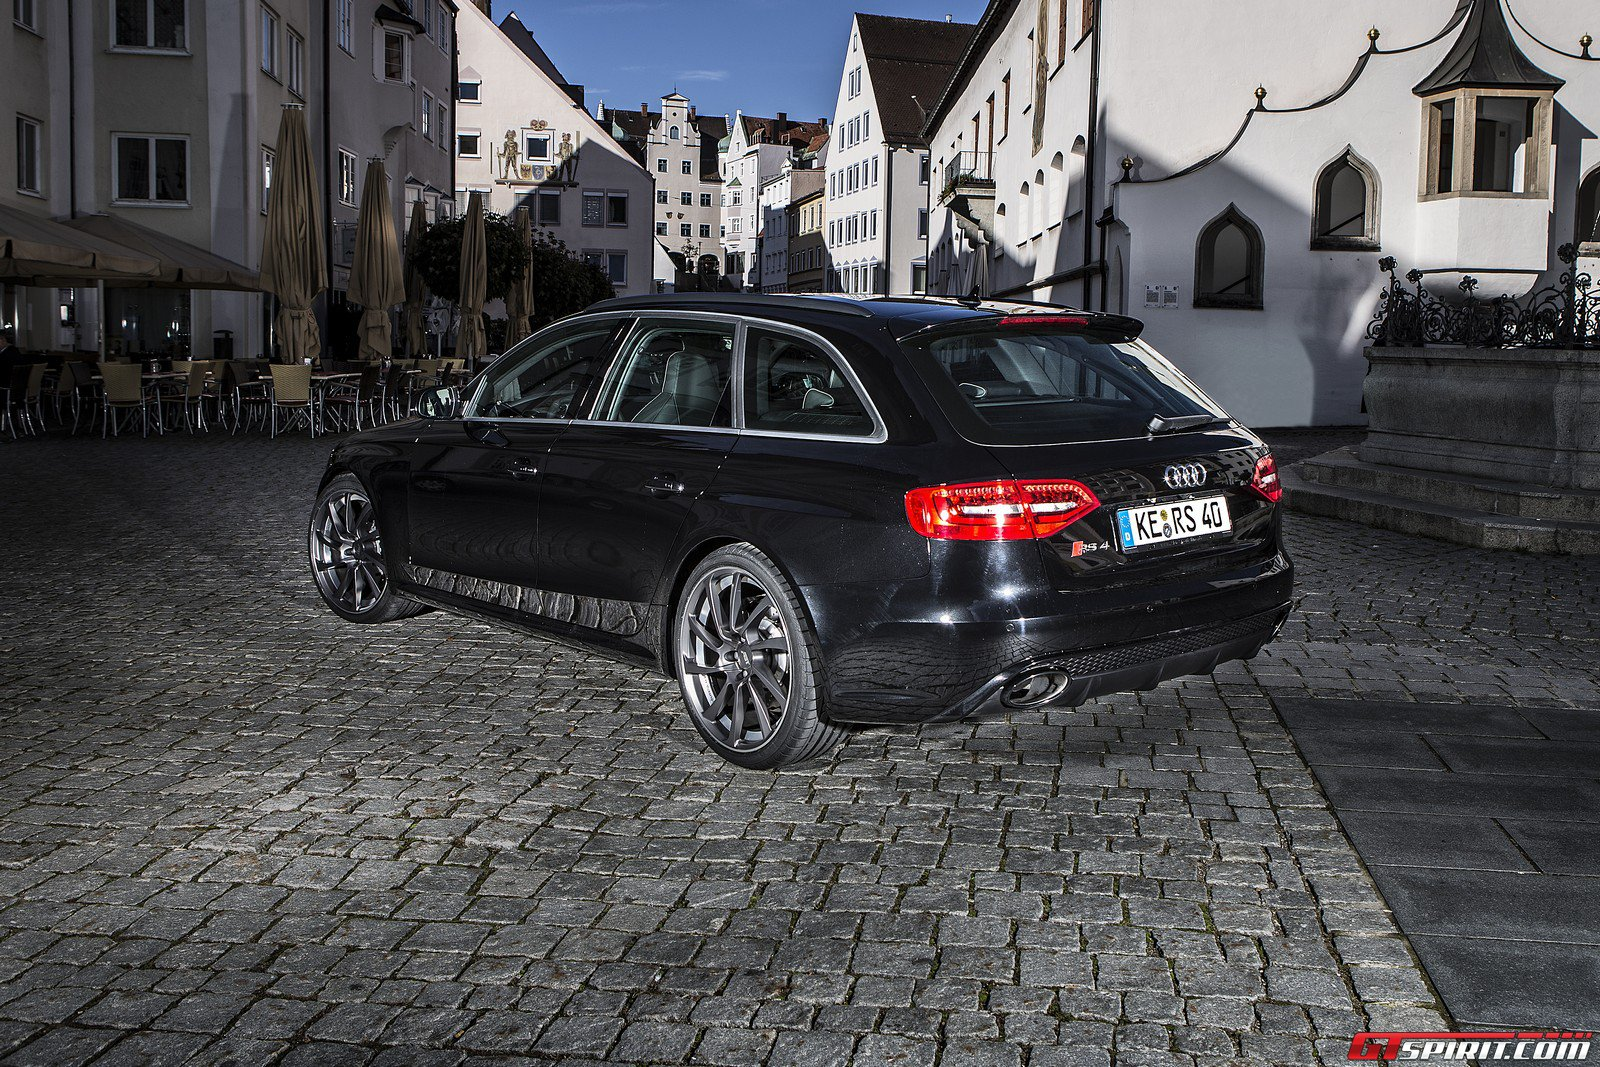 http://www.gtspirit.com/wp-content/gallery/abt-sportsline-rs4/abt-sportsline-rs4-006.jpg